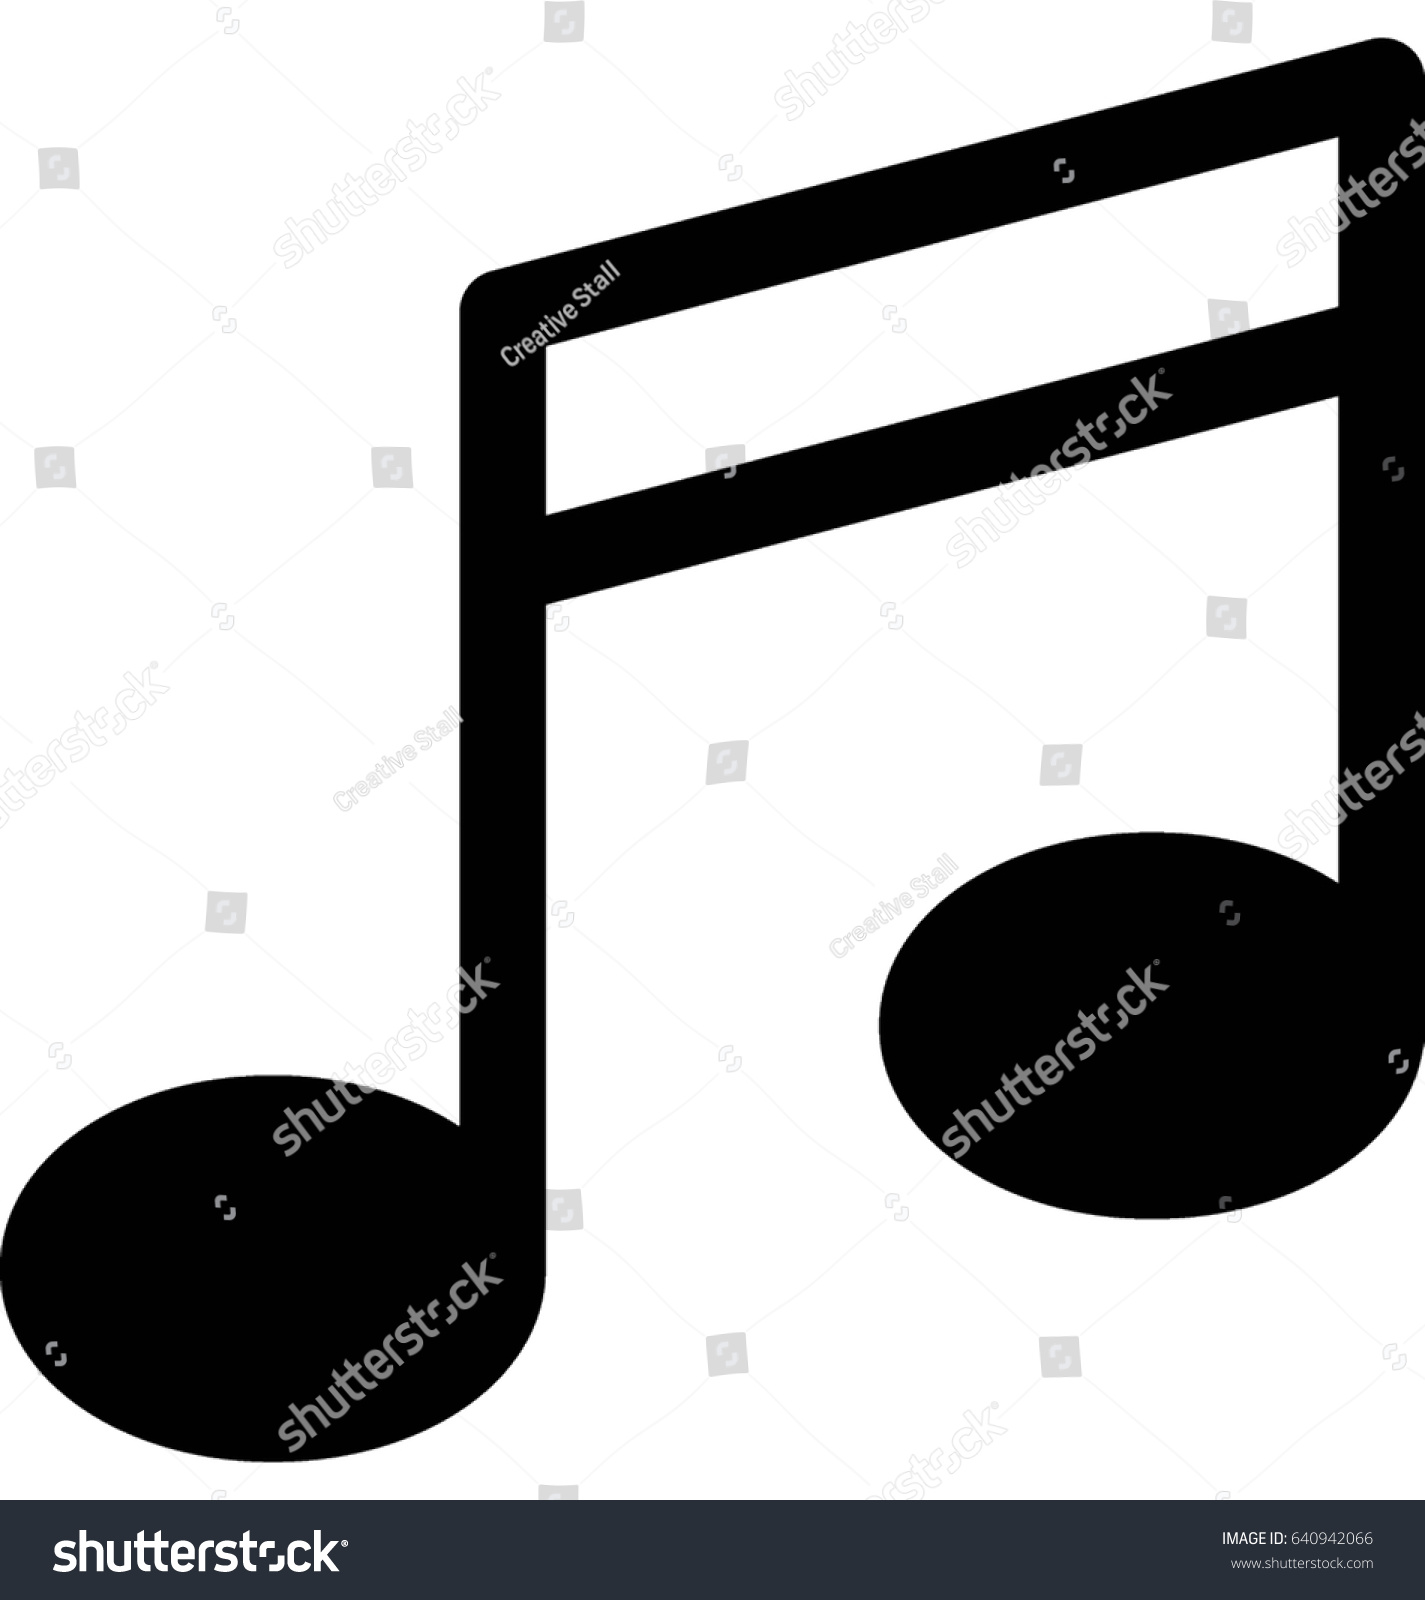 music note vector icon stock vector 640942066 shutterstock rh shutterstock com vector music notes free vector musical notes